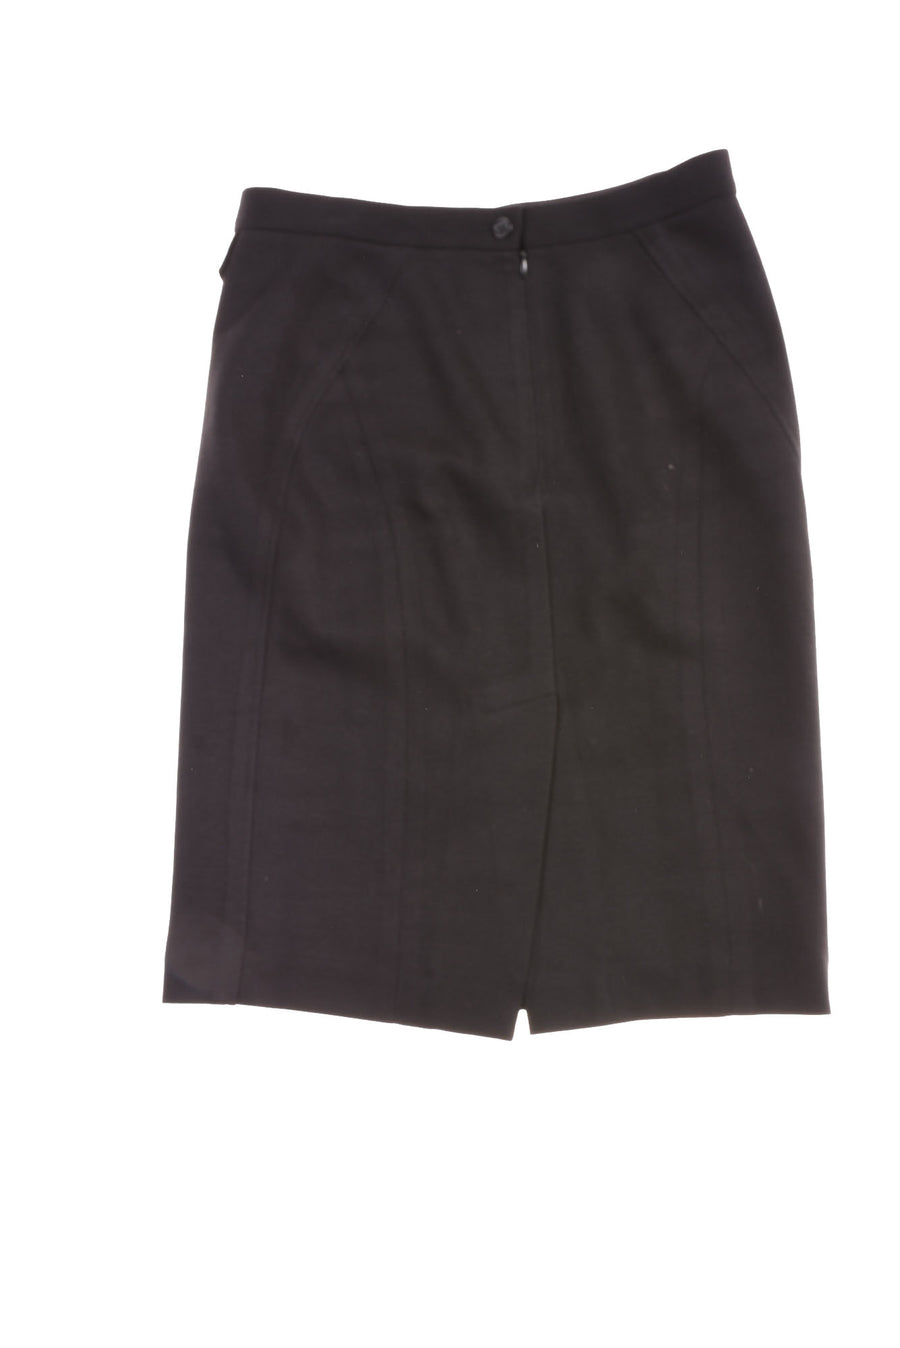 NEW BCBG Maxazria Women's Skirt 0 Black